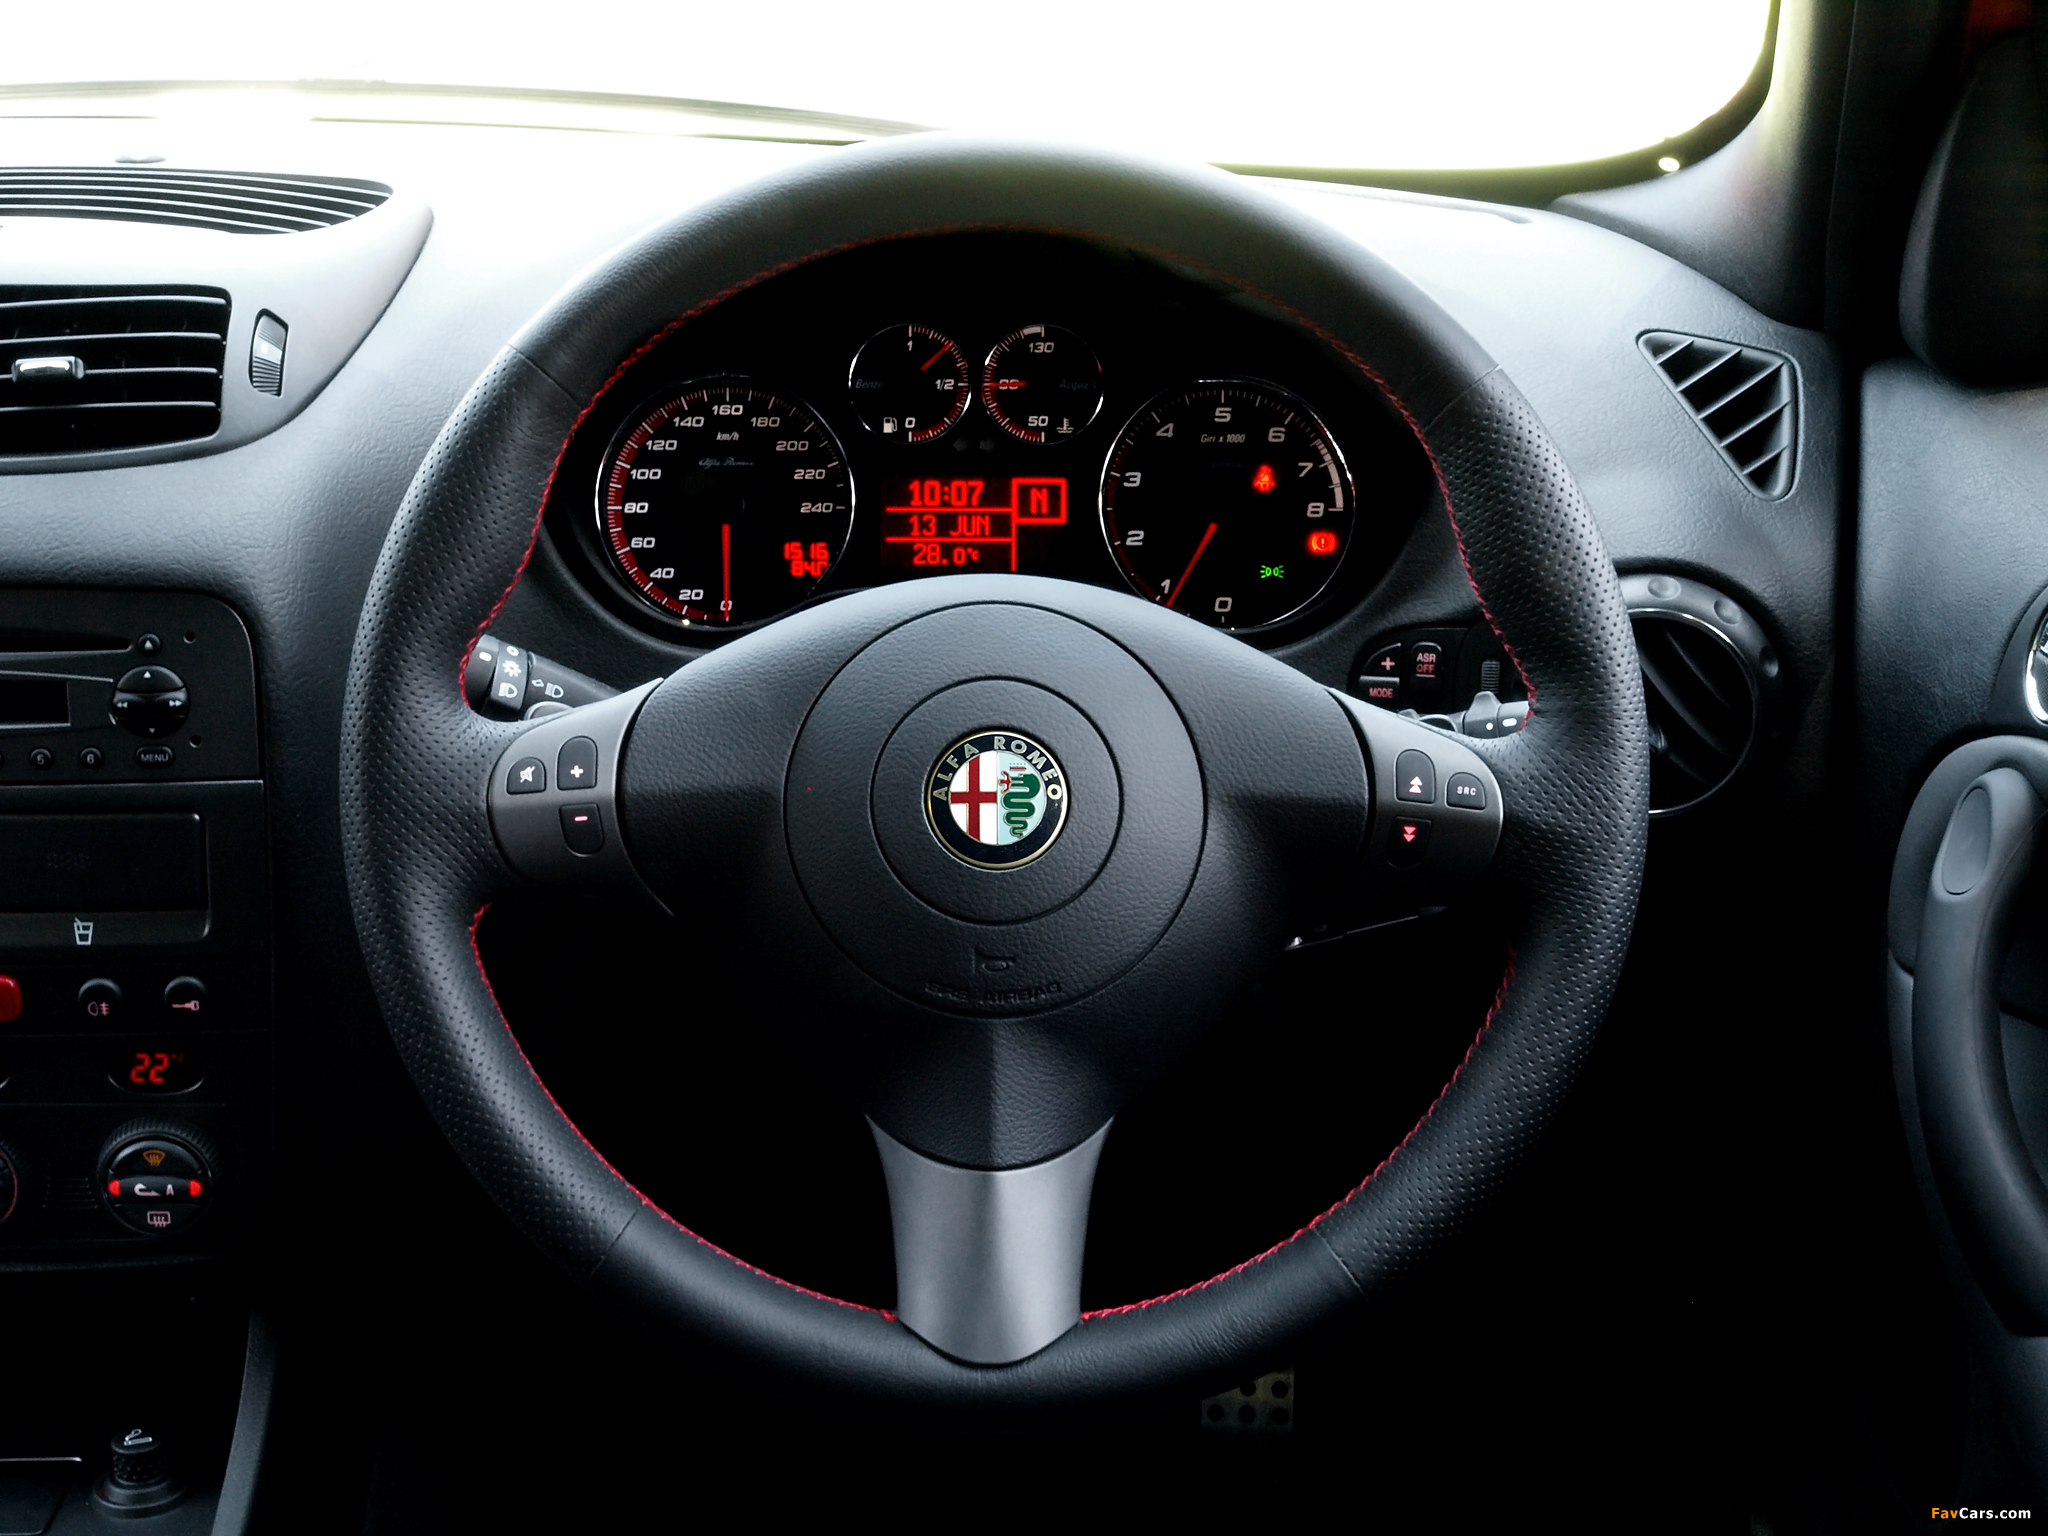 2048x1536 - Alfa Romeo 147 Wallpapers 31